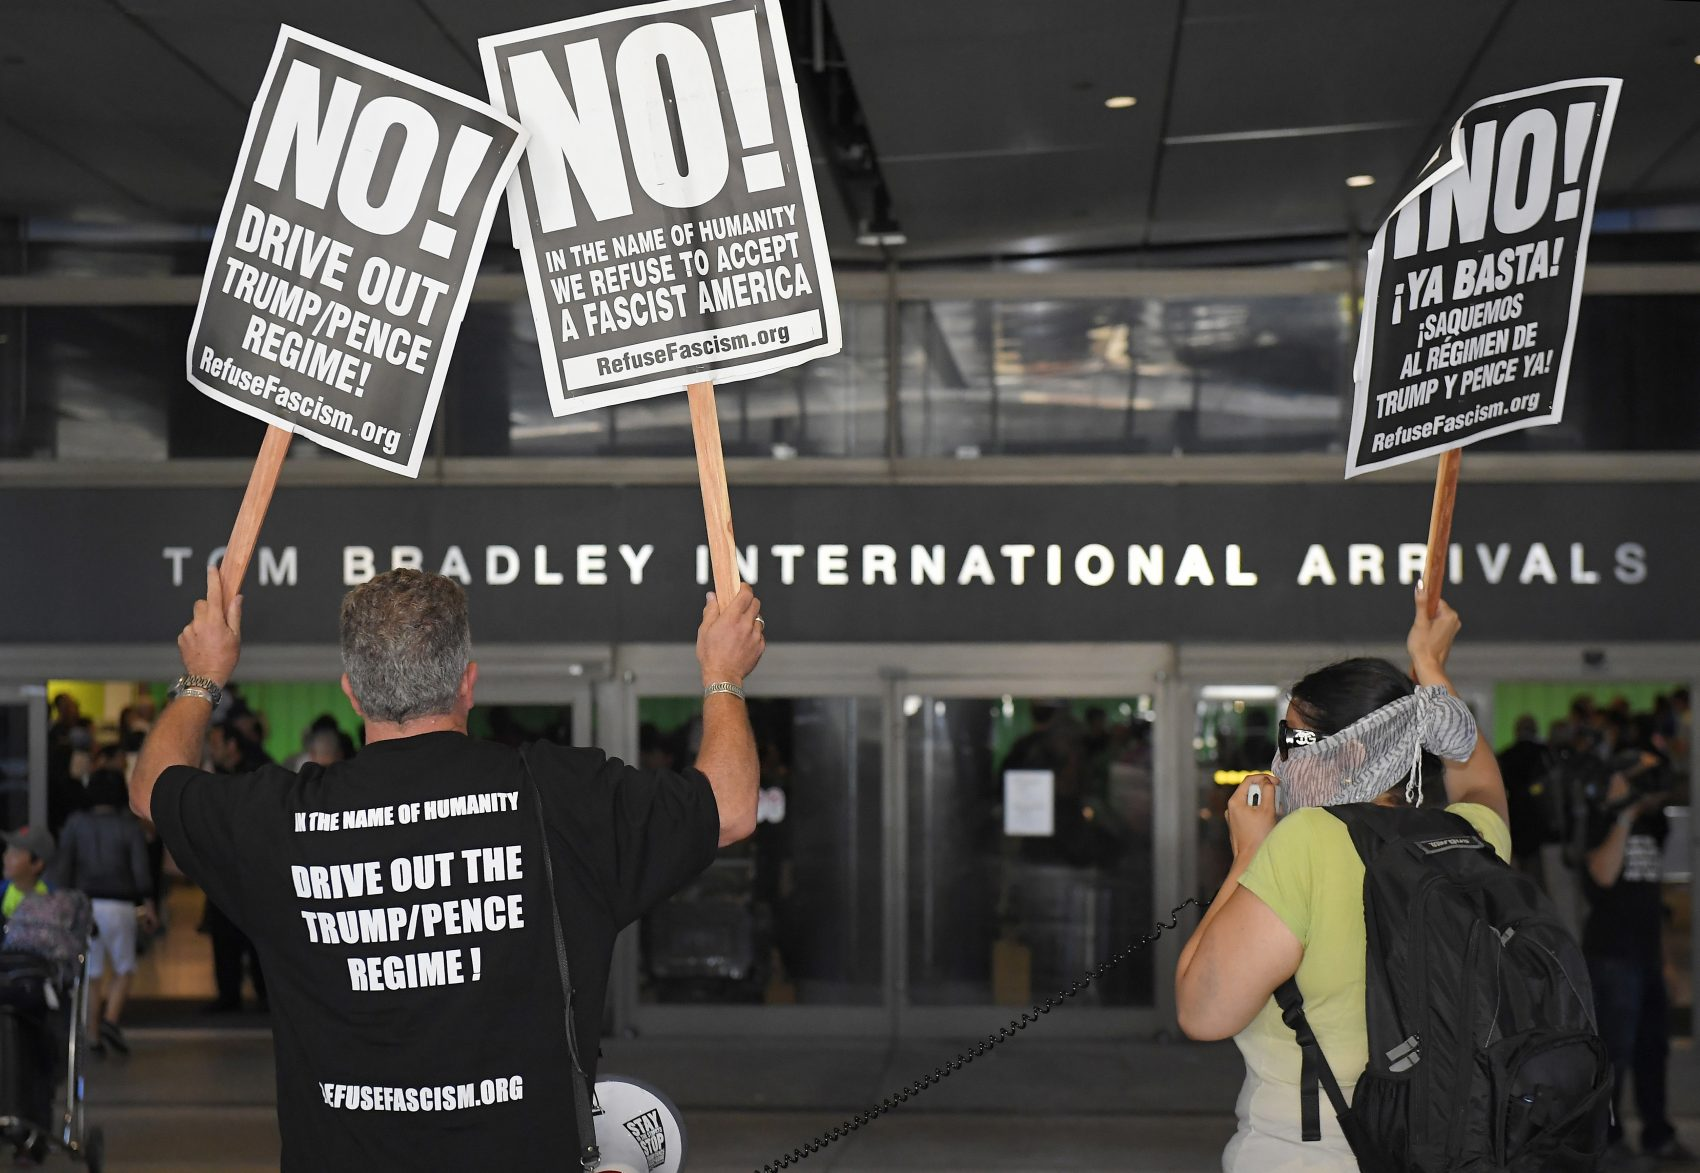 Activists protest outside the Tom Bradley International Terminal at Los Angeles International Airport, Thursday, June 29, 2017, in Los Angeles. (Mark J. Terrill/ AP)